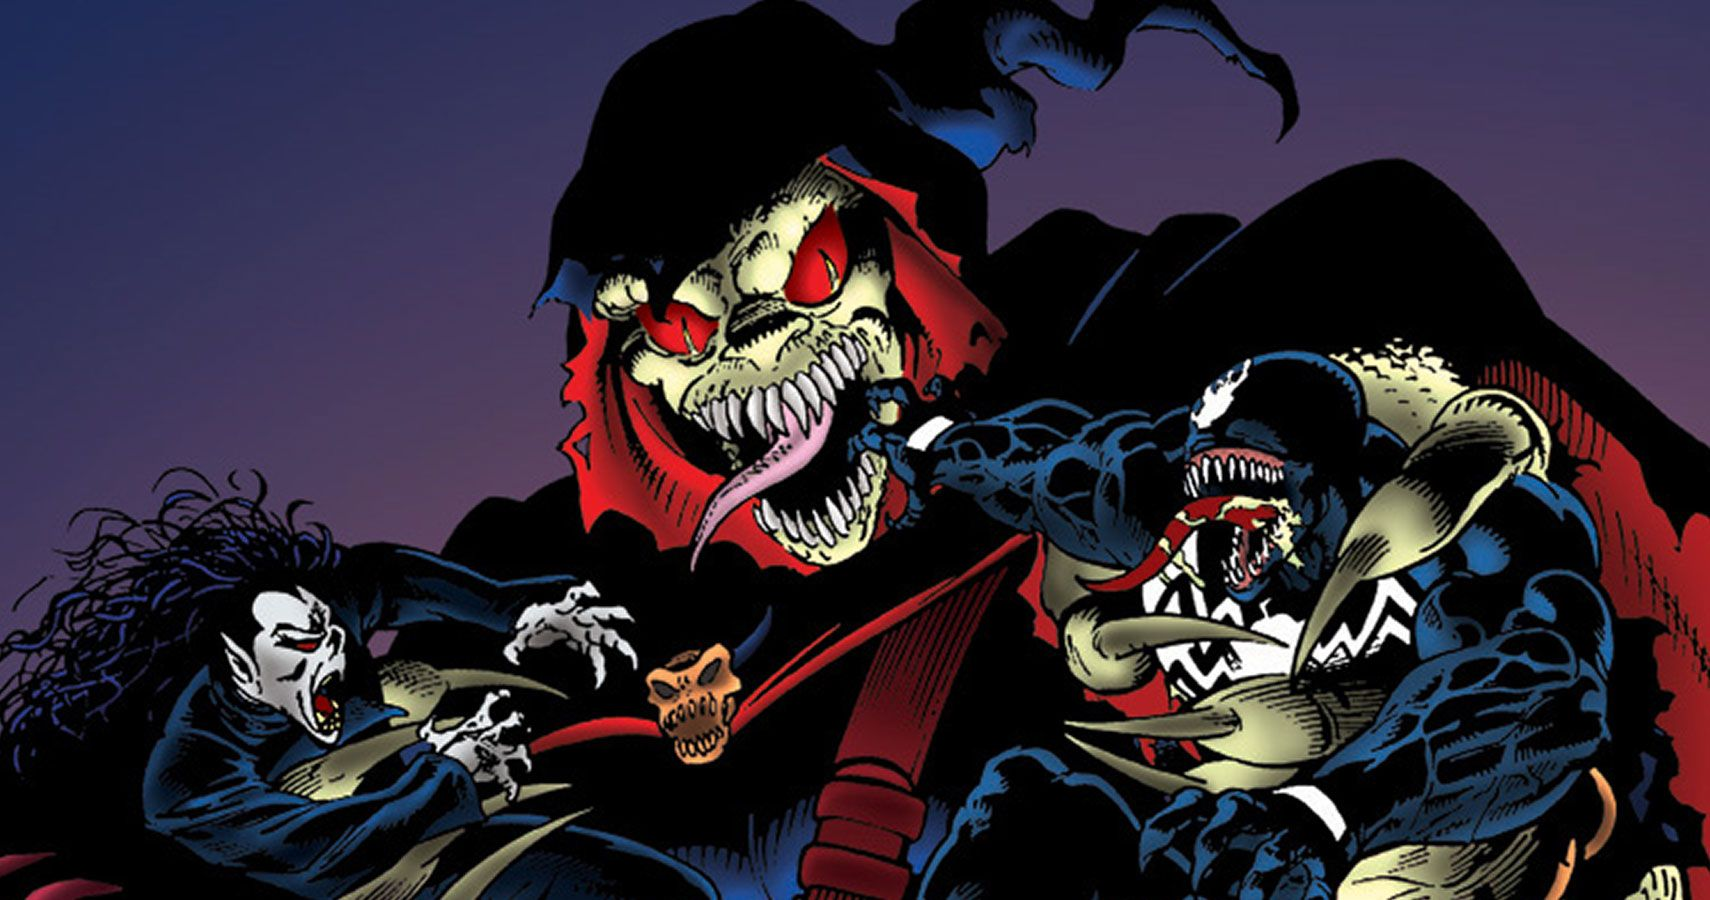 The horrifying nightmare, Demogoblin, surprisingly has a very complex character and story that is unlikely to appear on the screen.